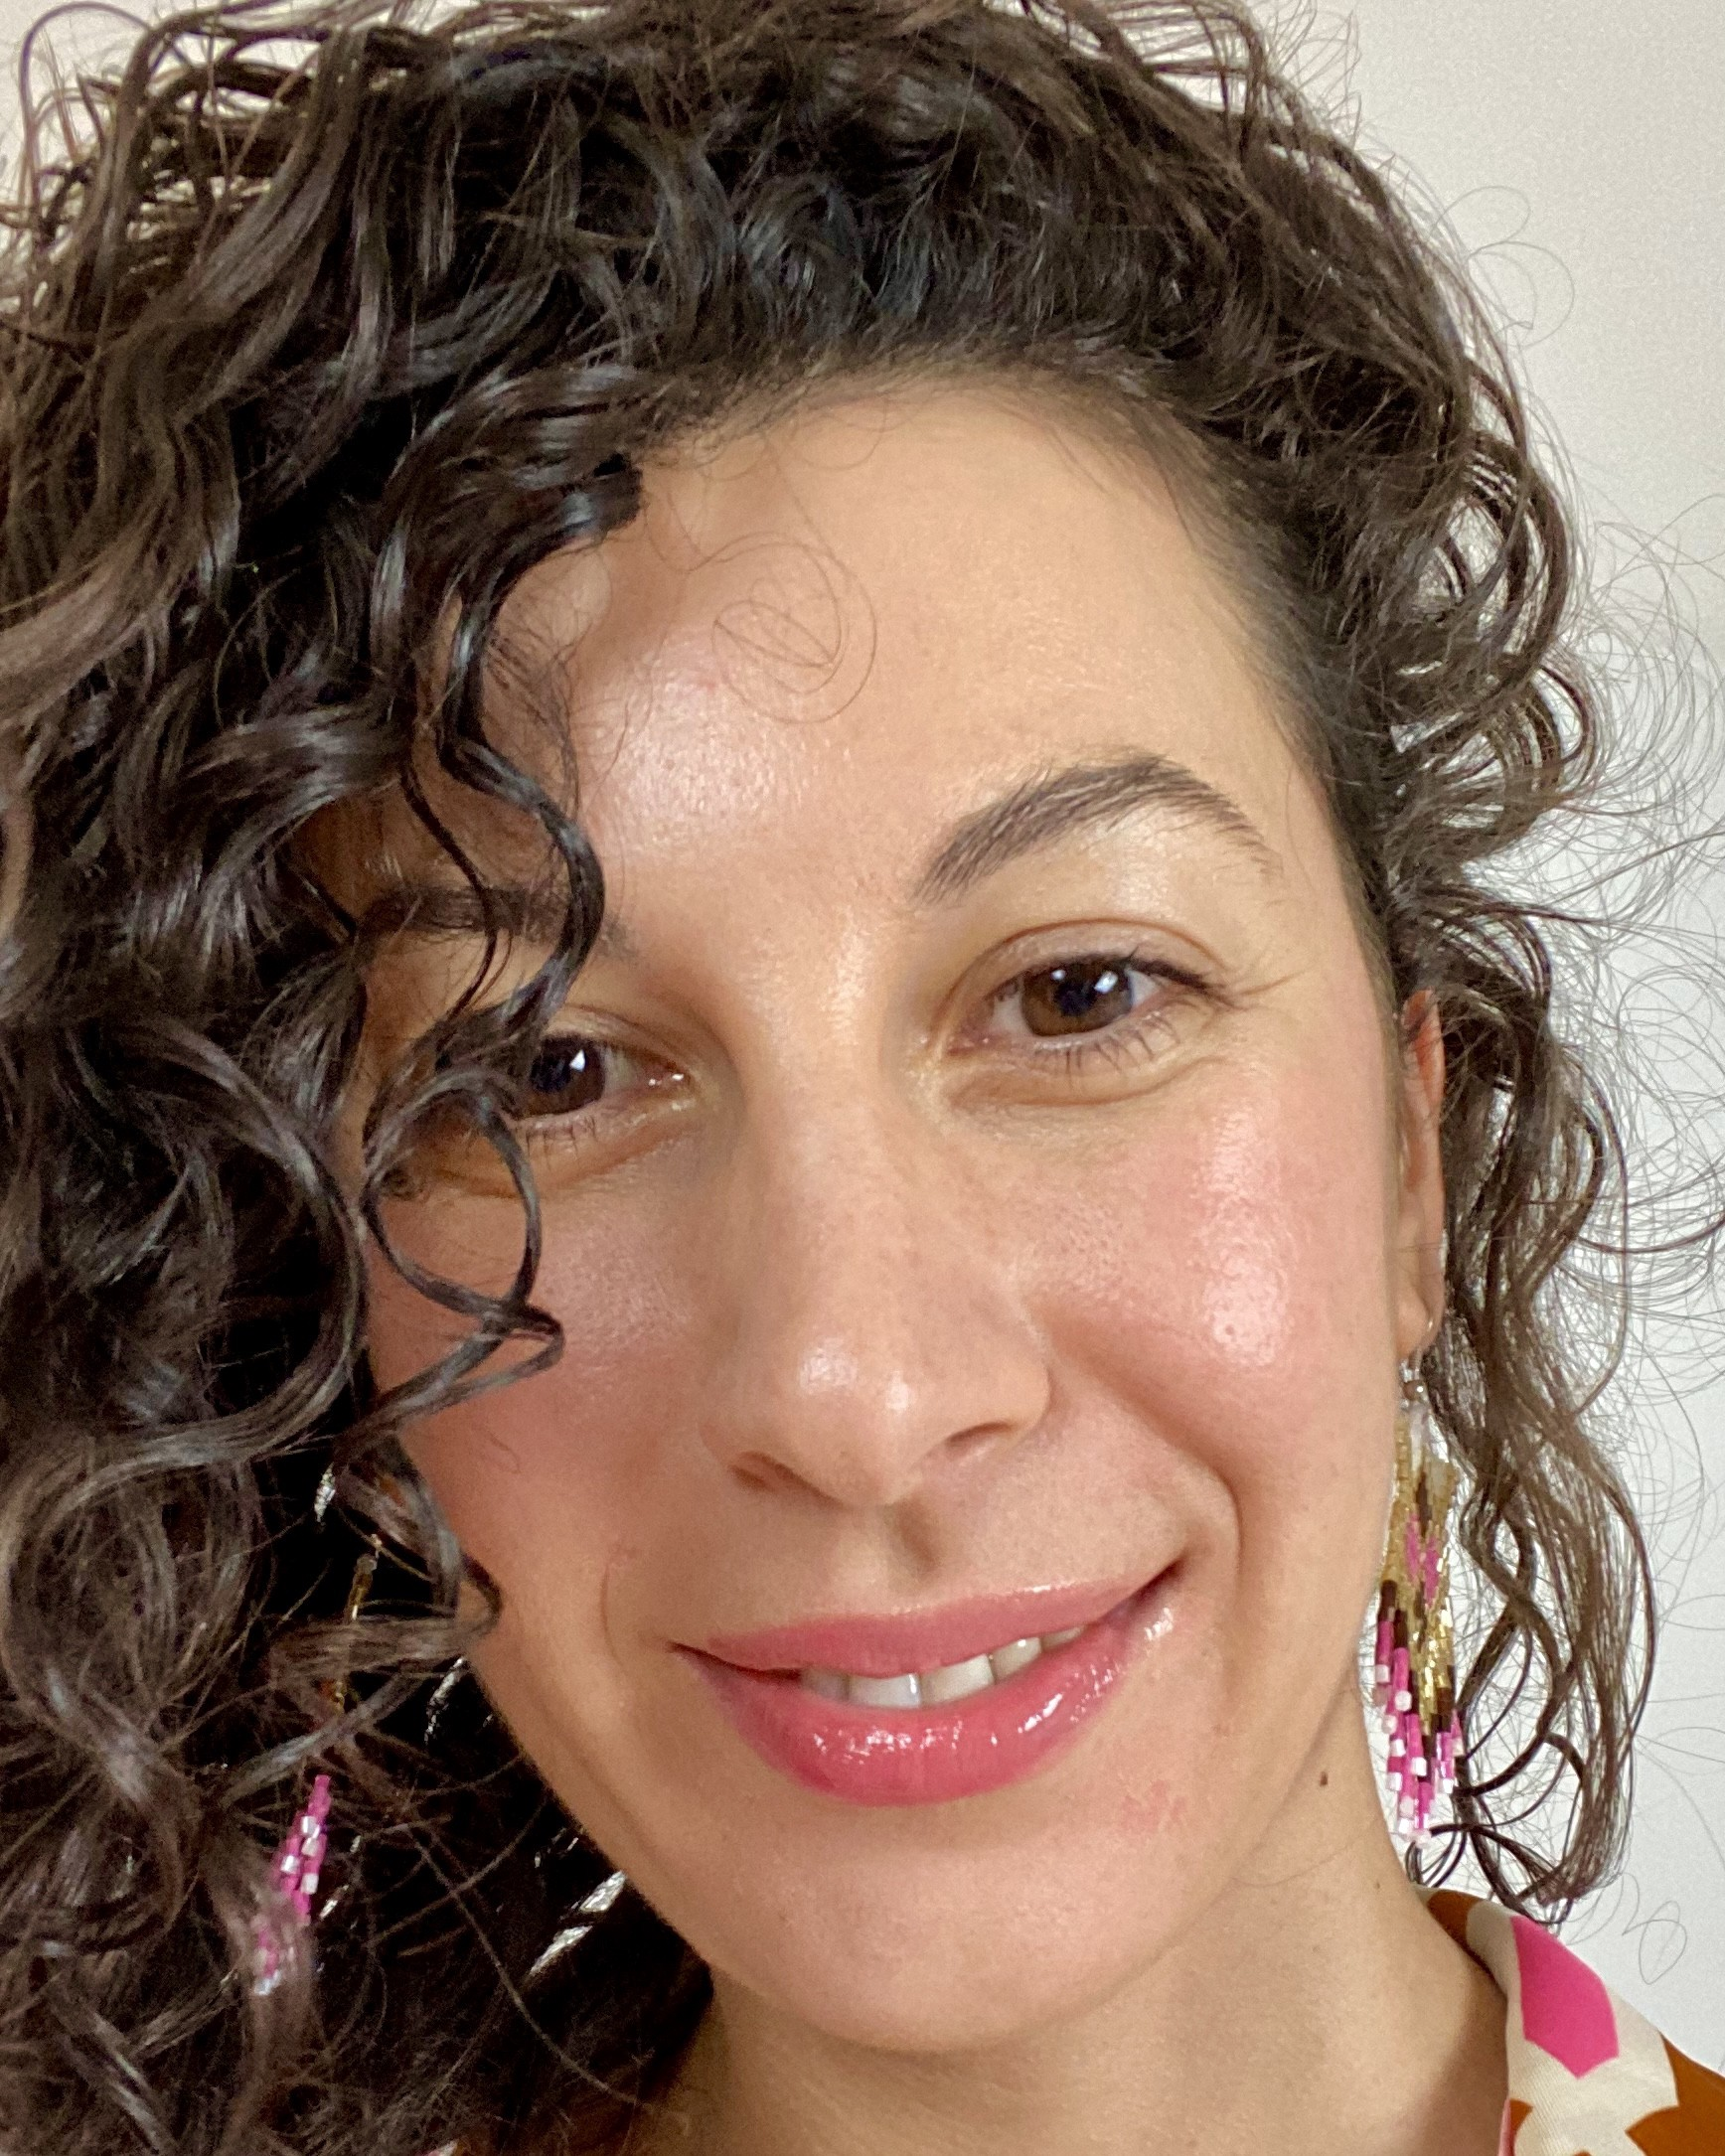 picture of the author smiling at the camera very close, curly hair